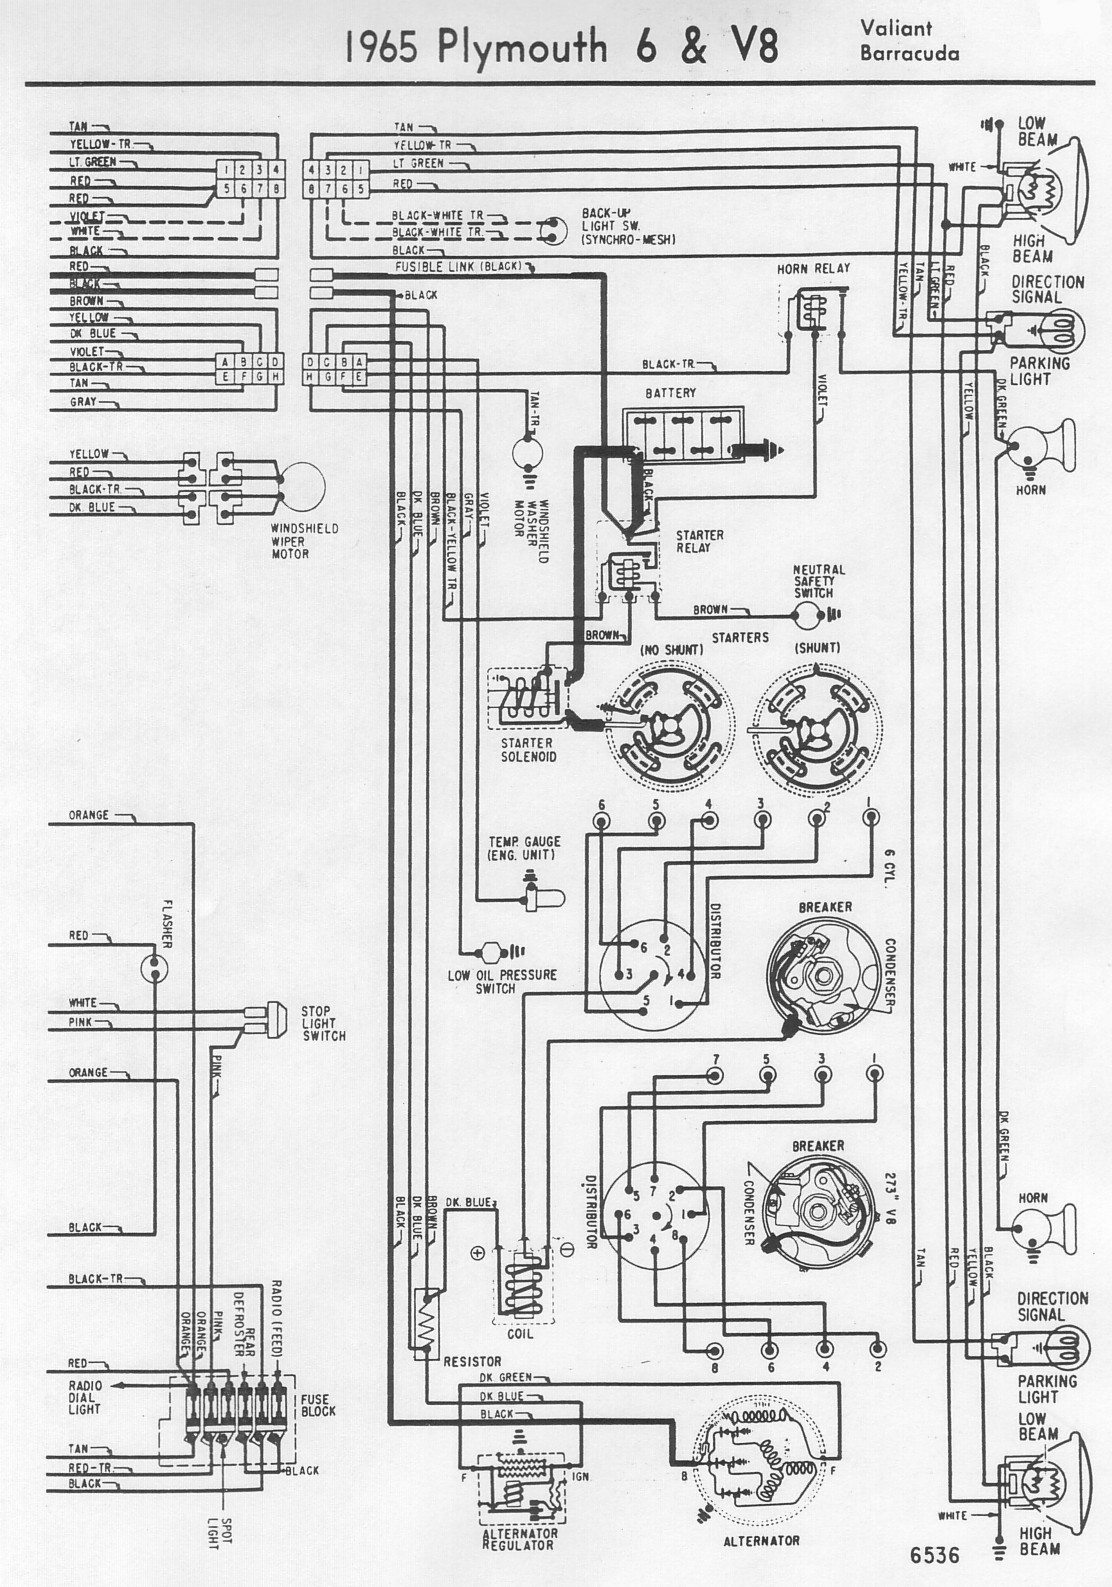 Wiring Diagram For Ignition Switch Of 1964 Barracuda 52 Volkswagen Diagrams 65valiantbarracudab